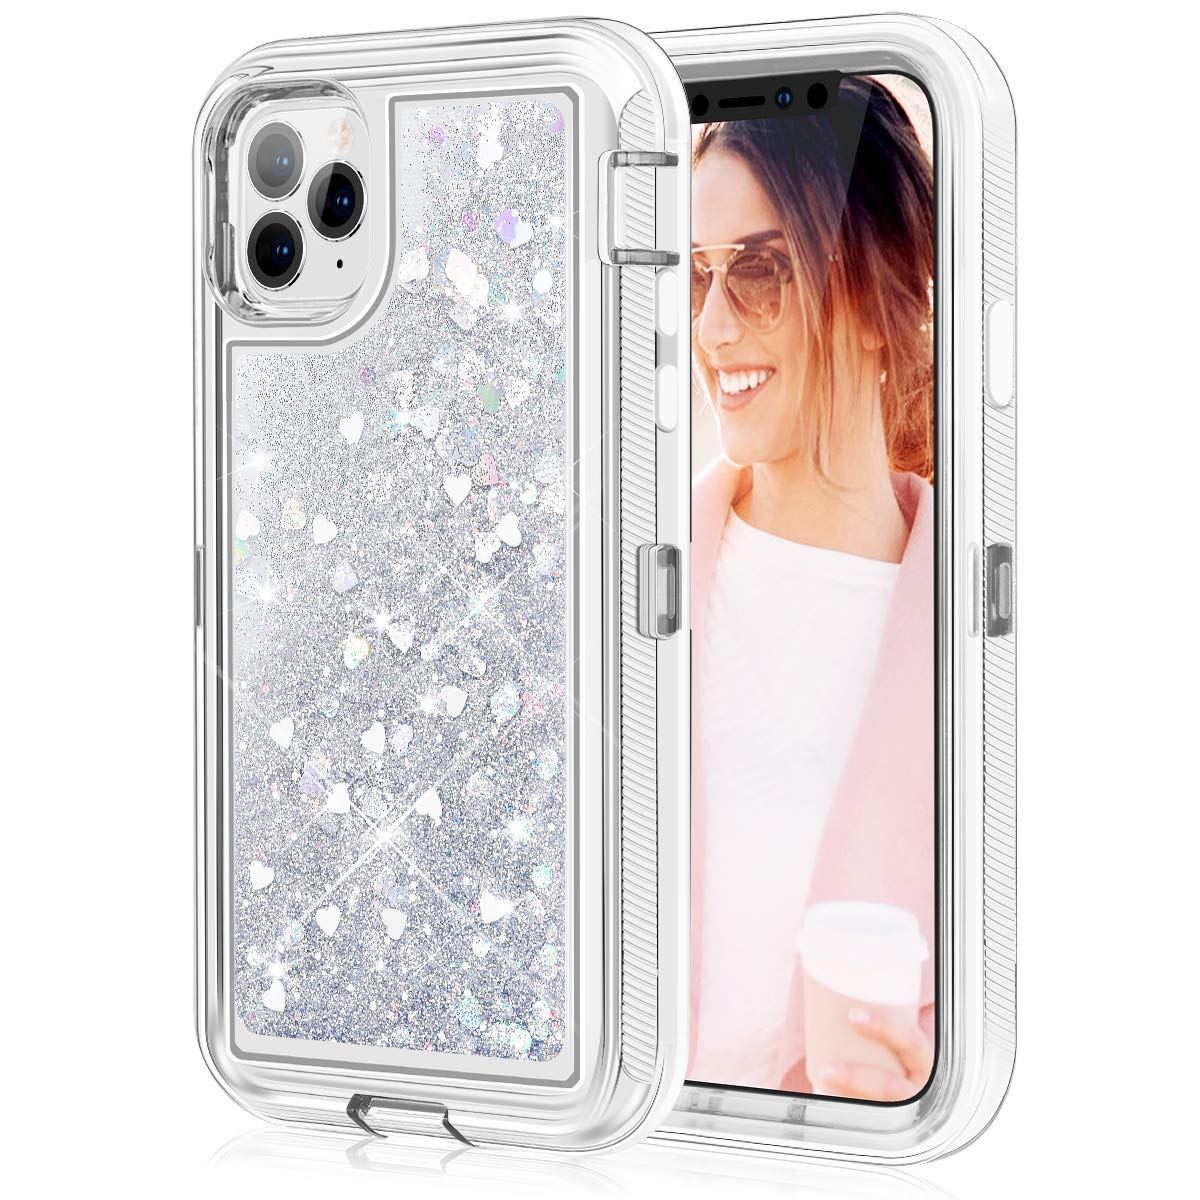 Caka Glitter Case for iPhone 11 Pro Glitter Case Protective Shockproof Liquid Bling Sparkle Heavy Duty Flowing Love Bumper Clear Women Girl Case for iPhone 11 Pro (5.8 inch, 2019)(Love Silver)